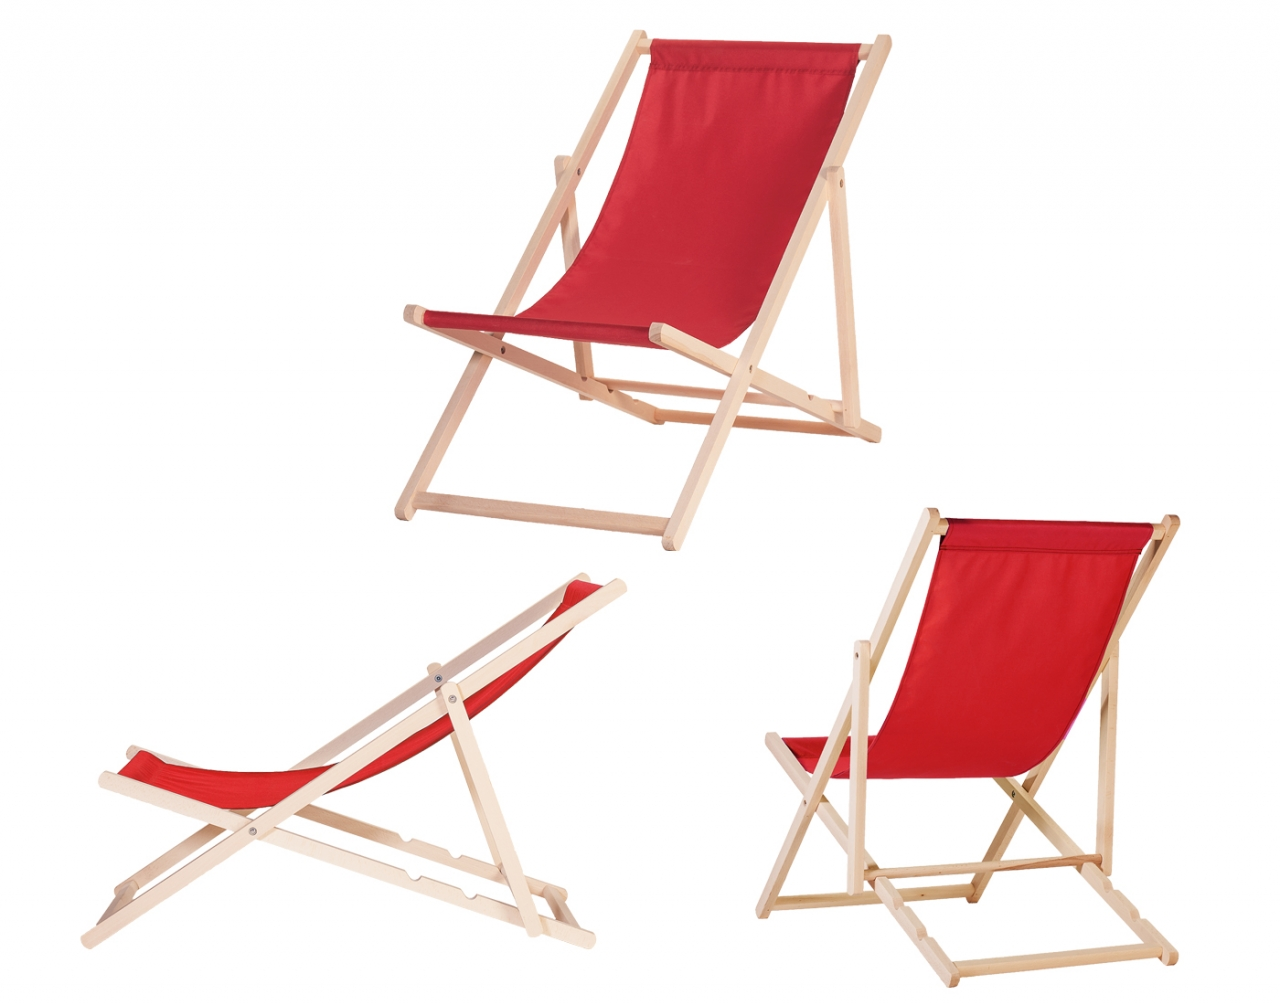 Wooden Deck Chair CLASSIC RED